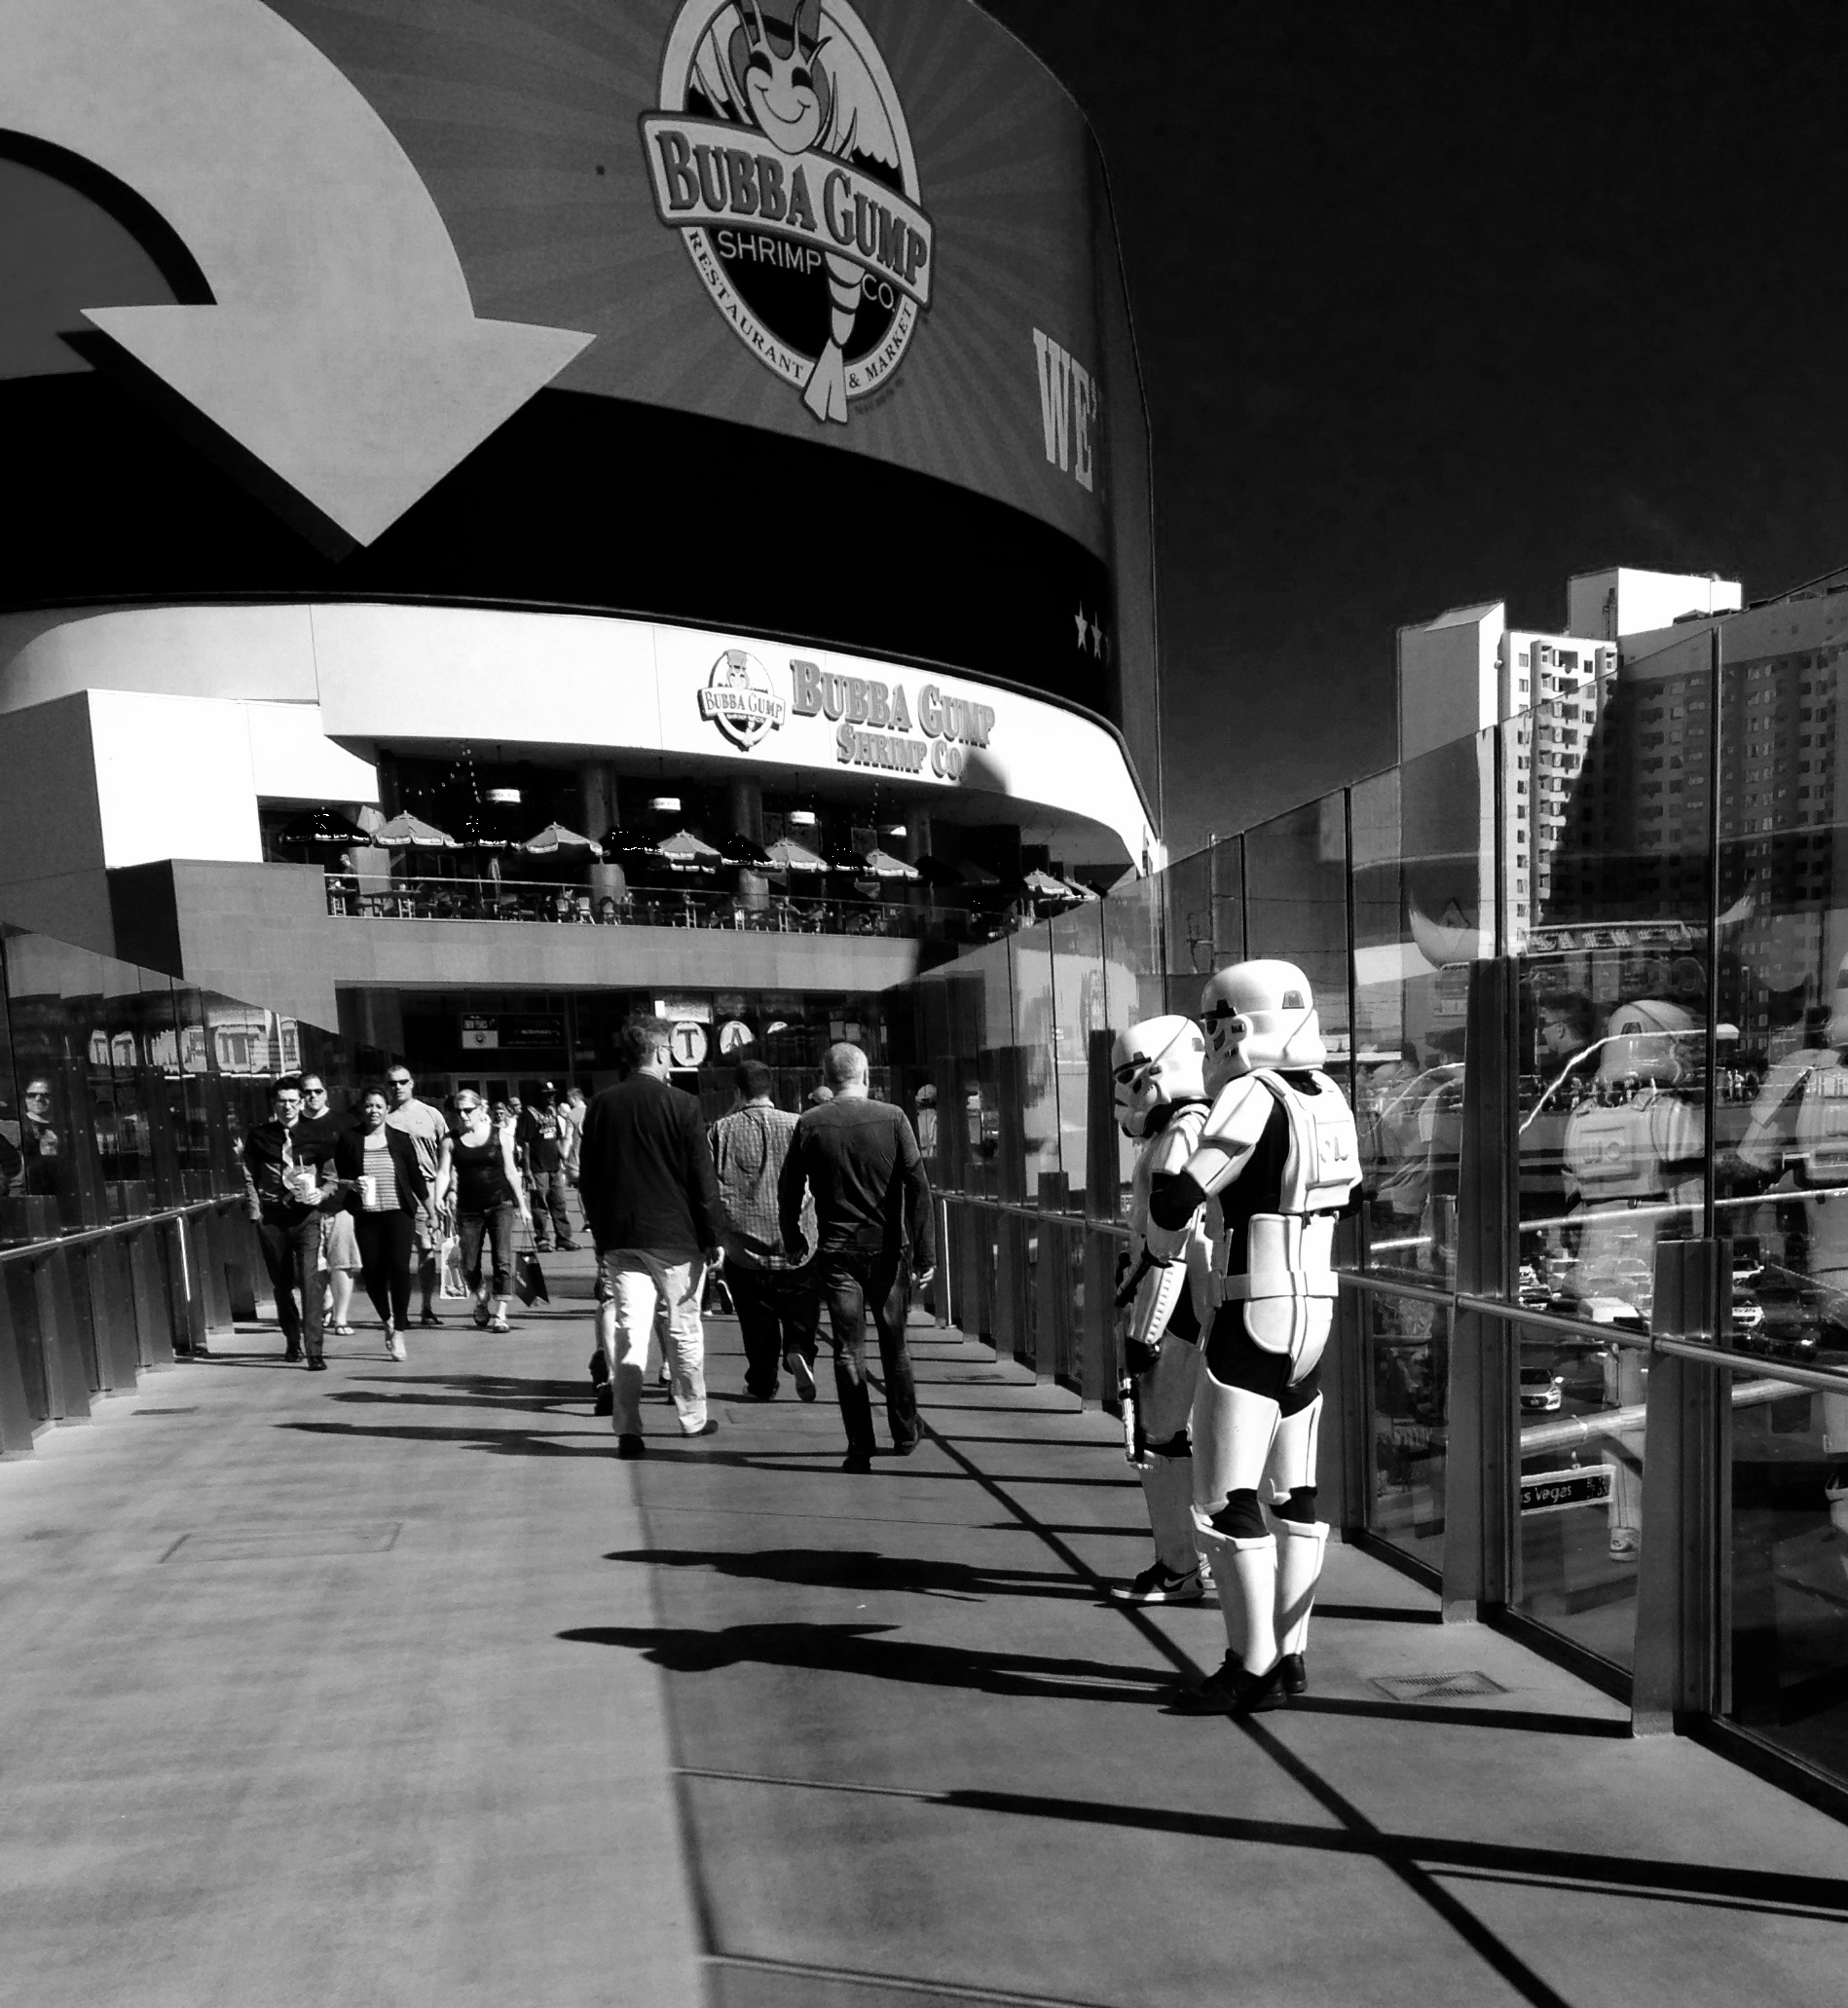 Vegas - the city where it's not unusual to see stormtroopers, Olaf, or Chewbacca hanging out on a sidewalk. Of course the intent is that you pay to have your picture taken with them...I snapped this shot on the down low.